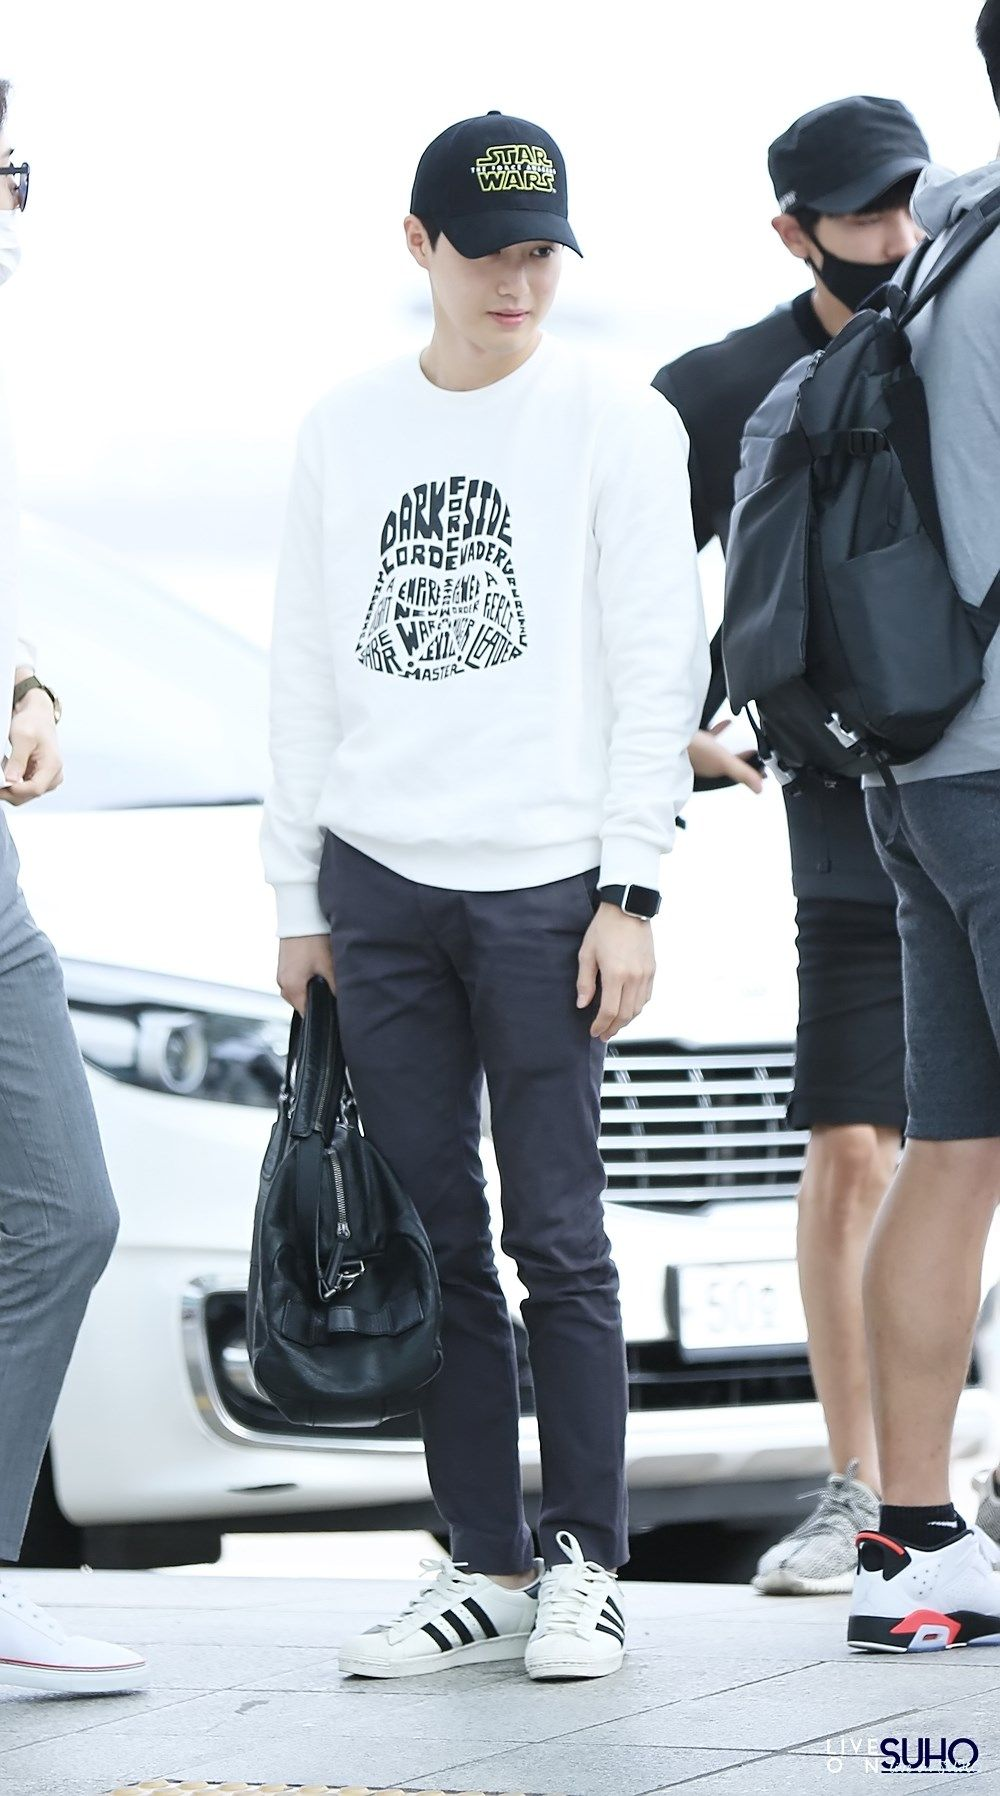 Suho - 150821 Incheon Airport, departing for Xi'an Credit: Live On Suho. (인천공항 출국)